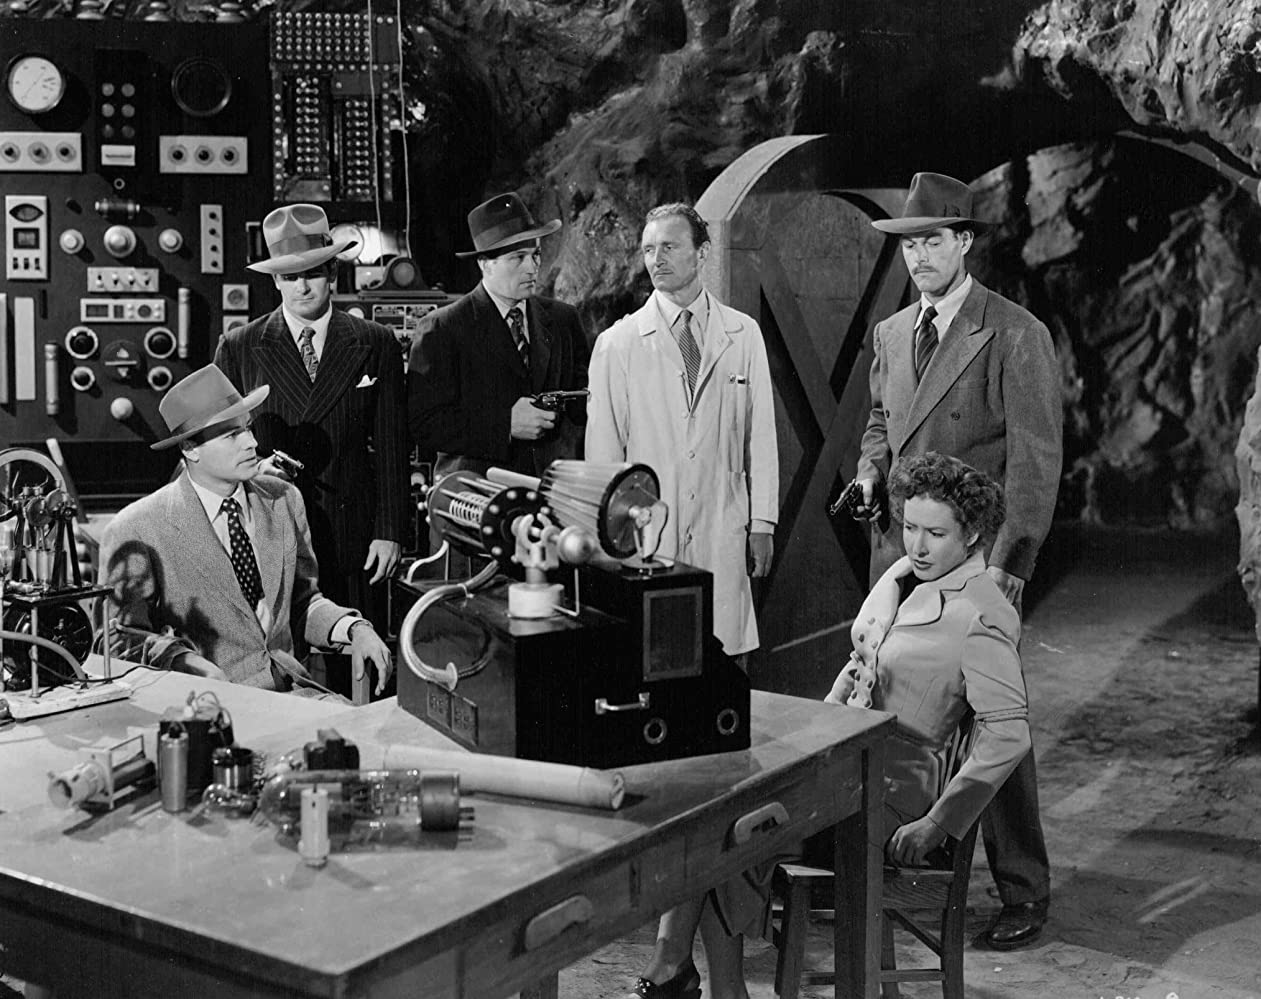 Mae Clarke, James Craven, Don Haggerty, House Peters Jr., David Sharpe, and Tom Steele in King of the Rocket Men (1949)